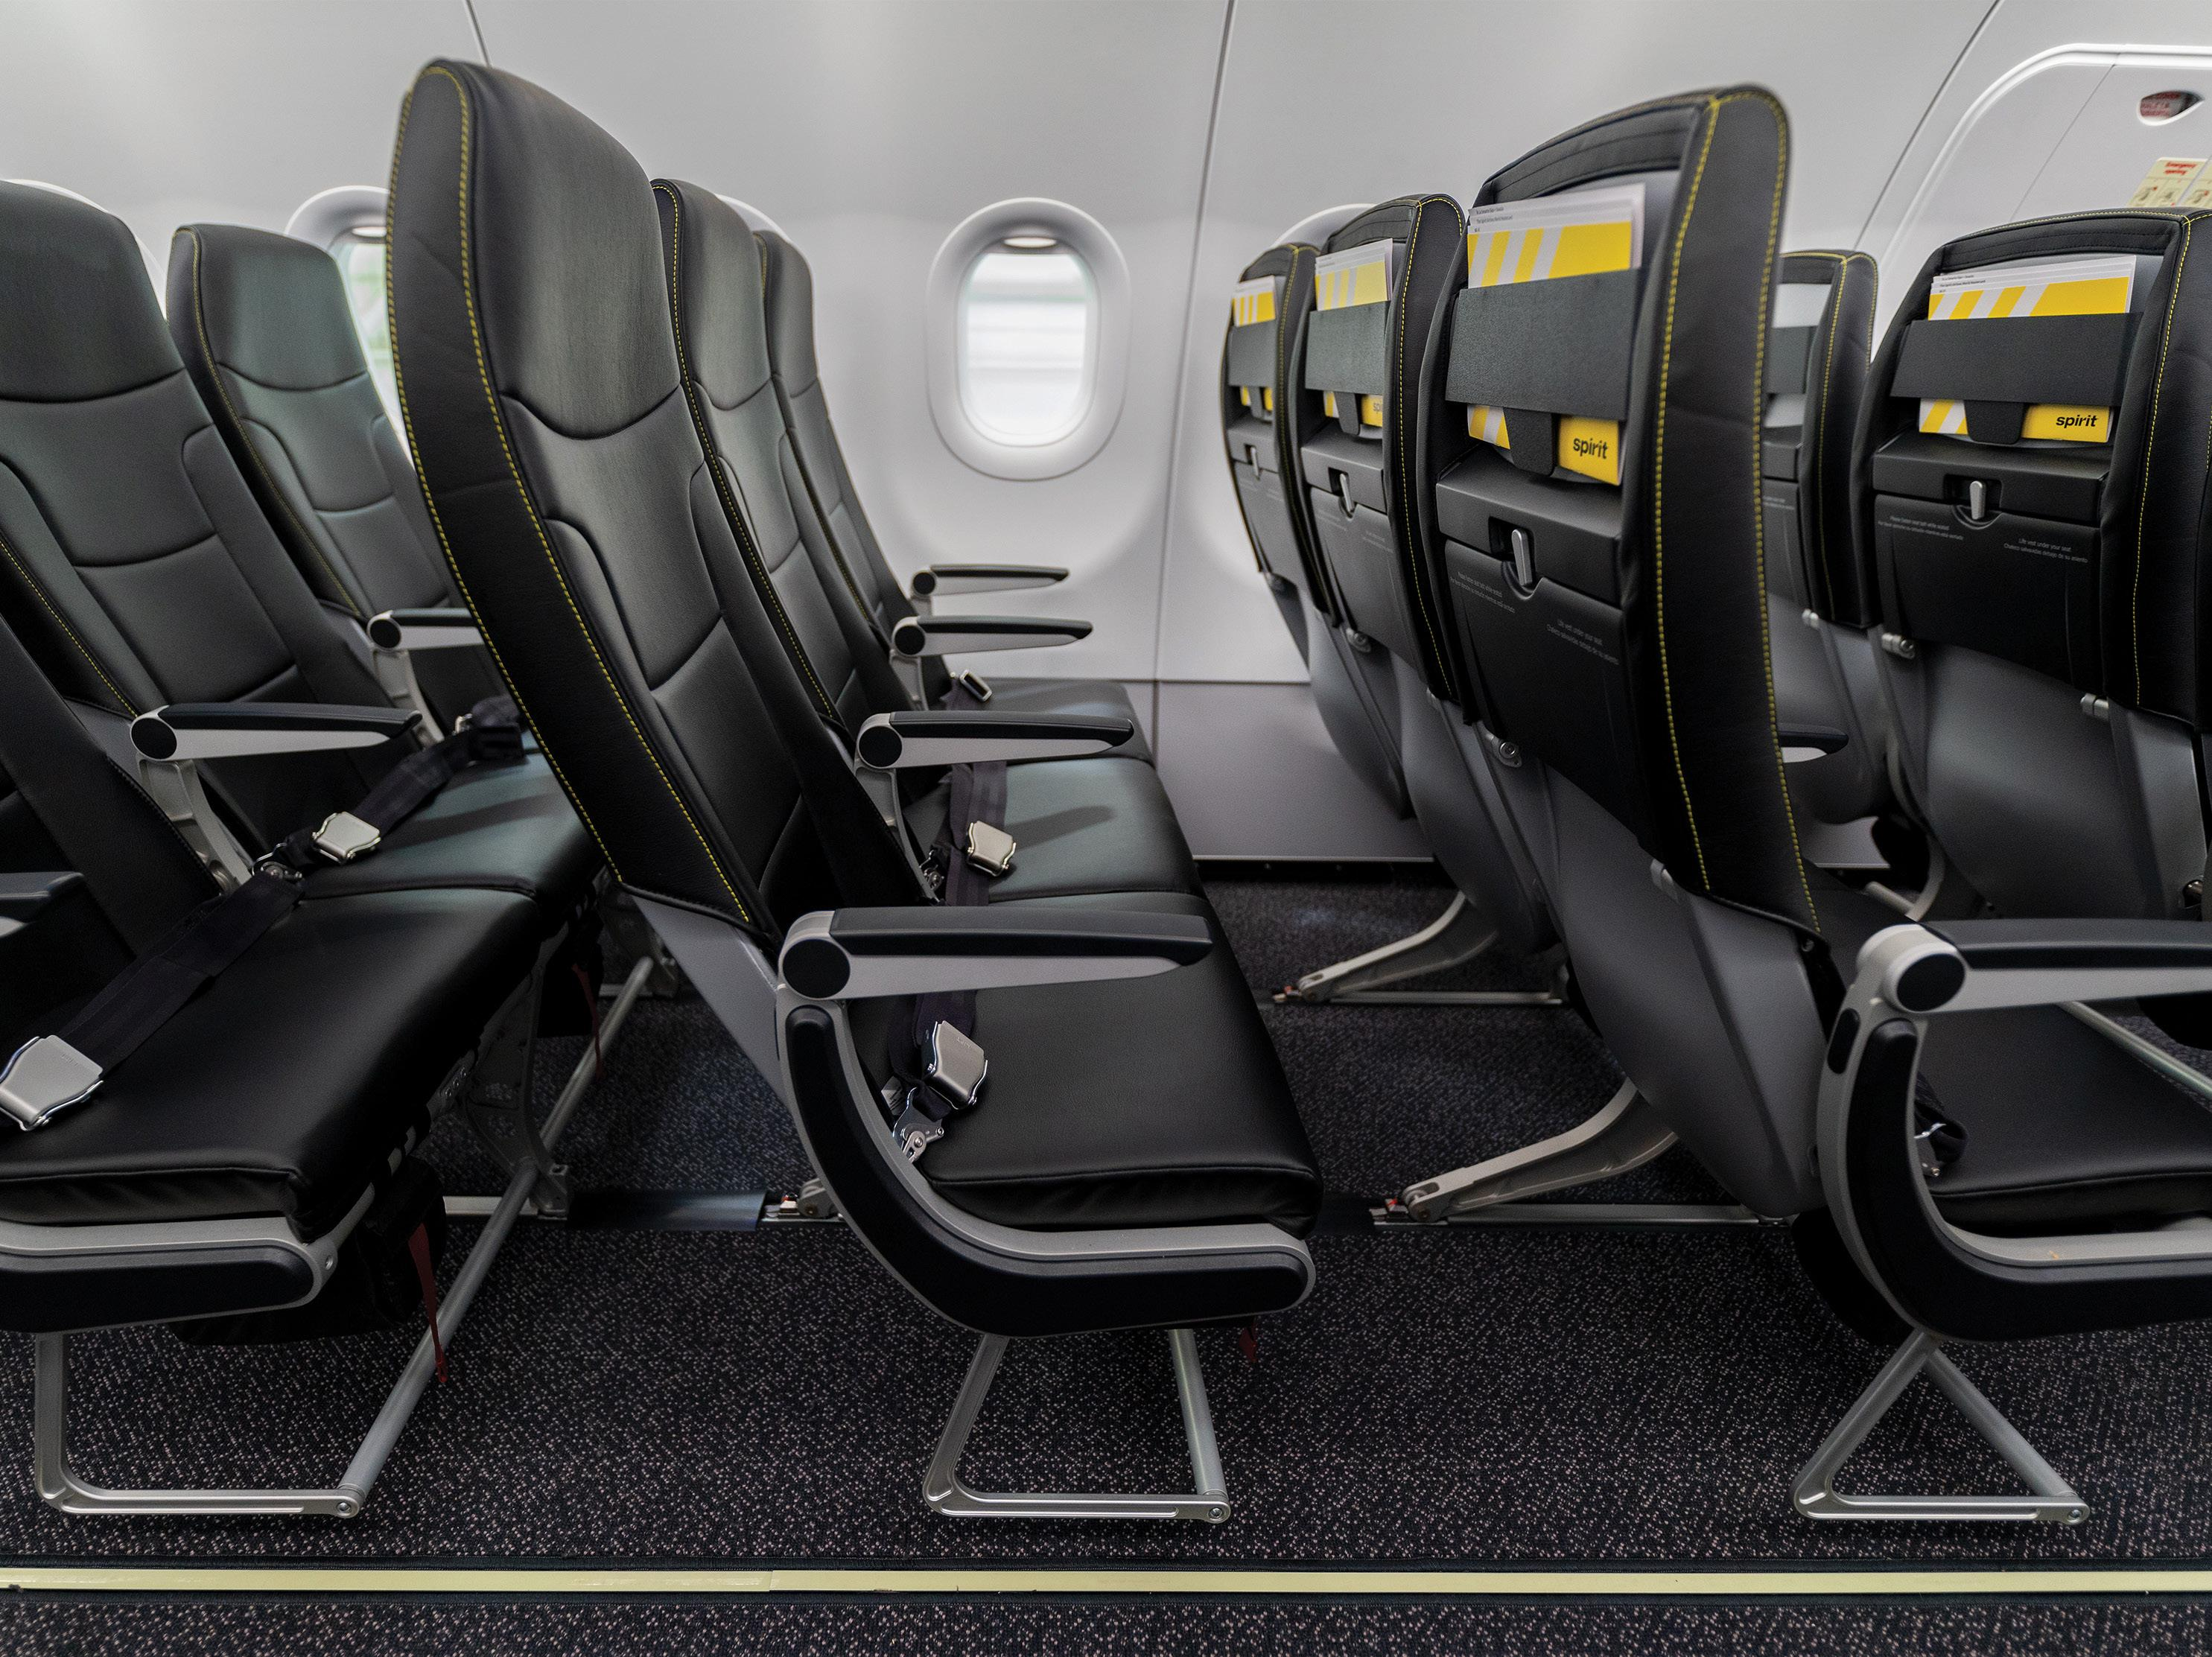 Page 44 of SEATING AT THE SEAMS PAX Tech gets the inside scoop from experts at Acro Aircraft Seating, HAECO, Aviointeriors and Geven on the biggest seating contracts from last year and what is expected in the year ahead